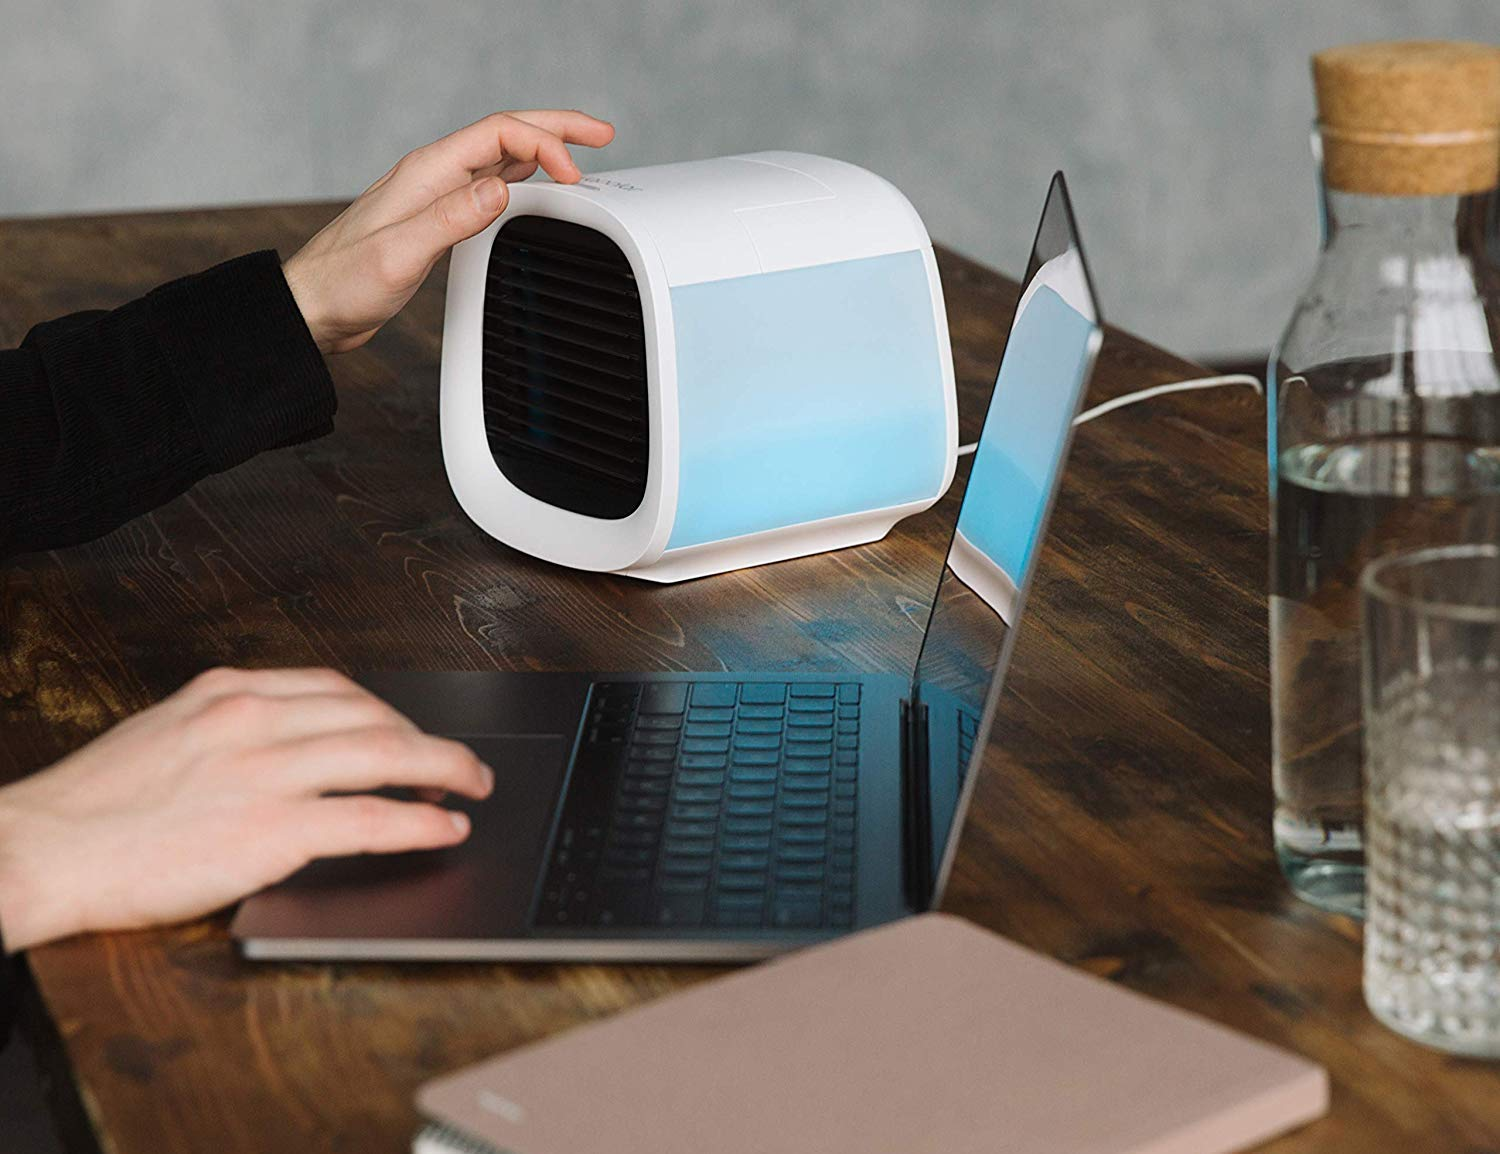 Evapolar evaCHILL Personal Evaporative Air Cooler will keep you cool wherever you are